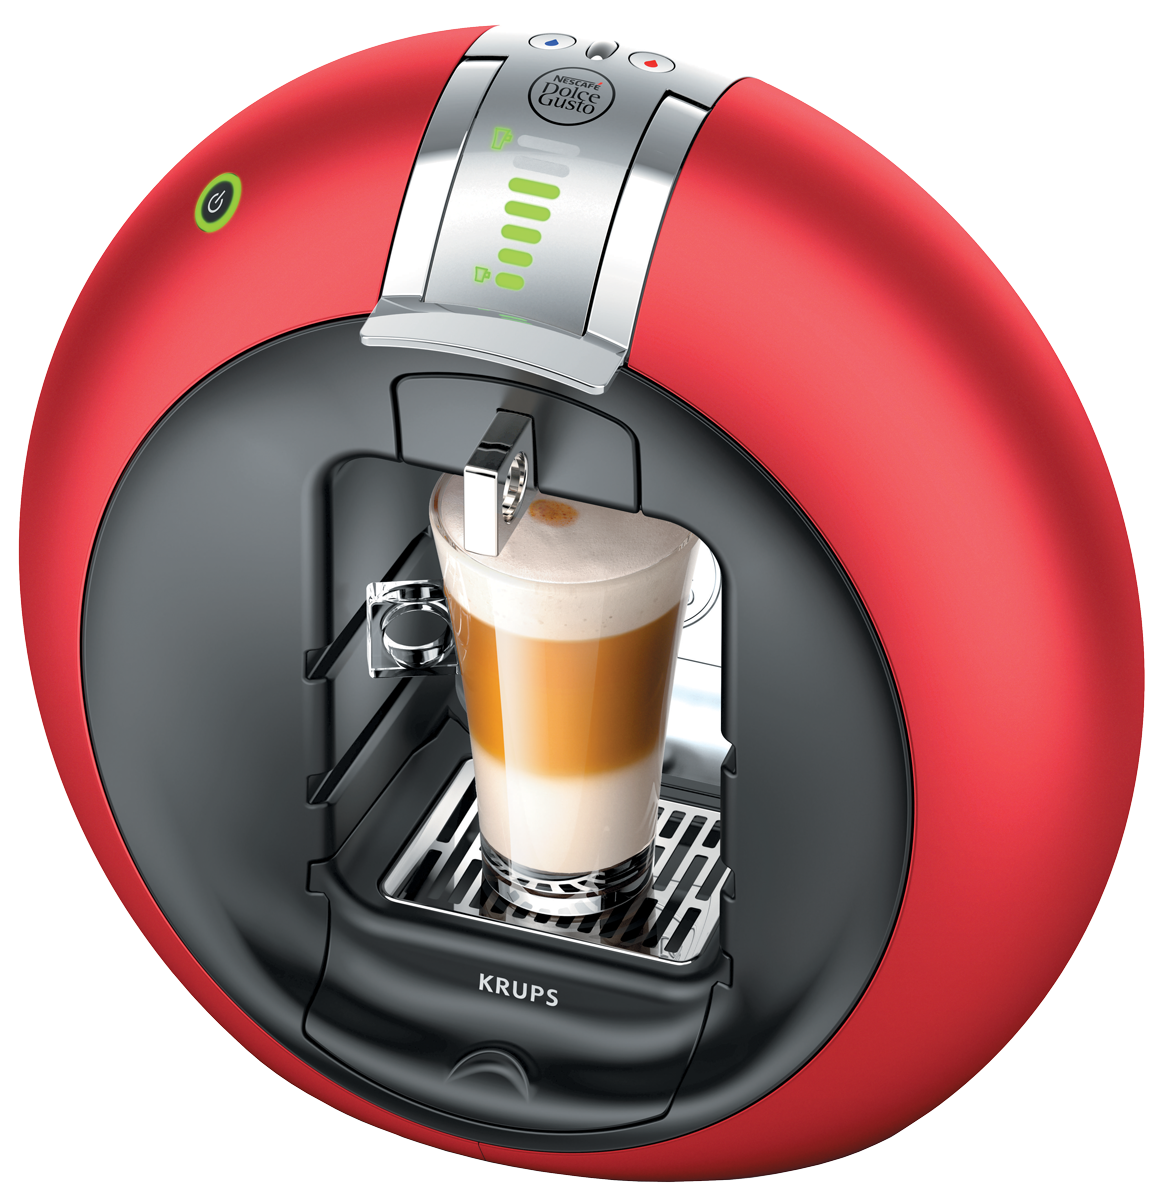 krups kp5105 nescaf dolce gusto circolo automatic rouge. Black Bedroom Furniture Sets. Home Design Ideas